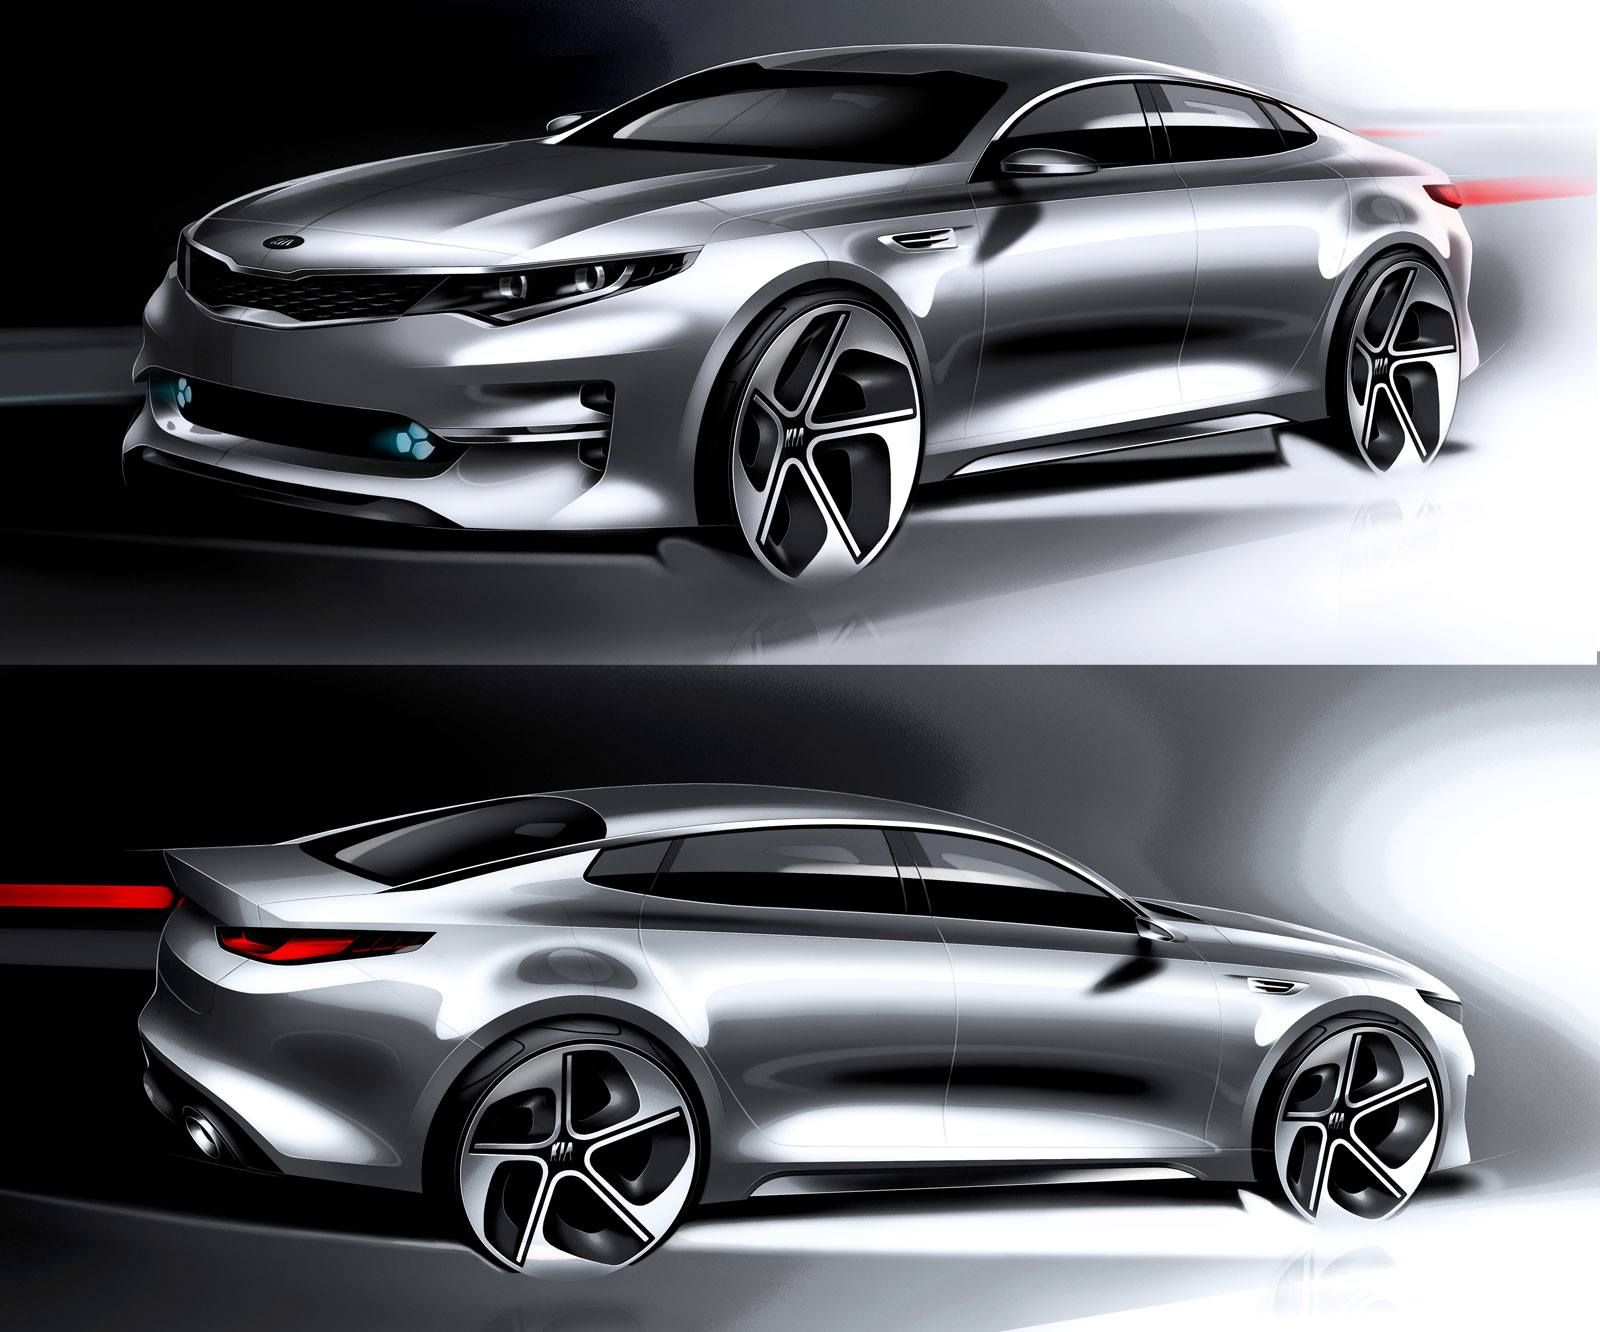 121 Best Favorite Rides Images | Kia Optima, Kia Motors, Car - 2022 Kia Optima White Concept, Rumor, Release Date